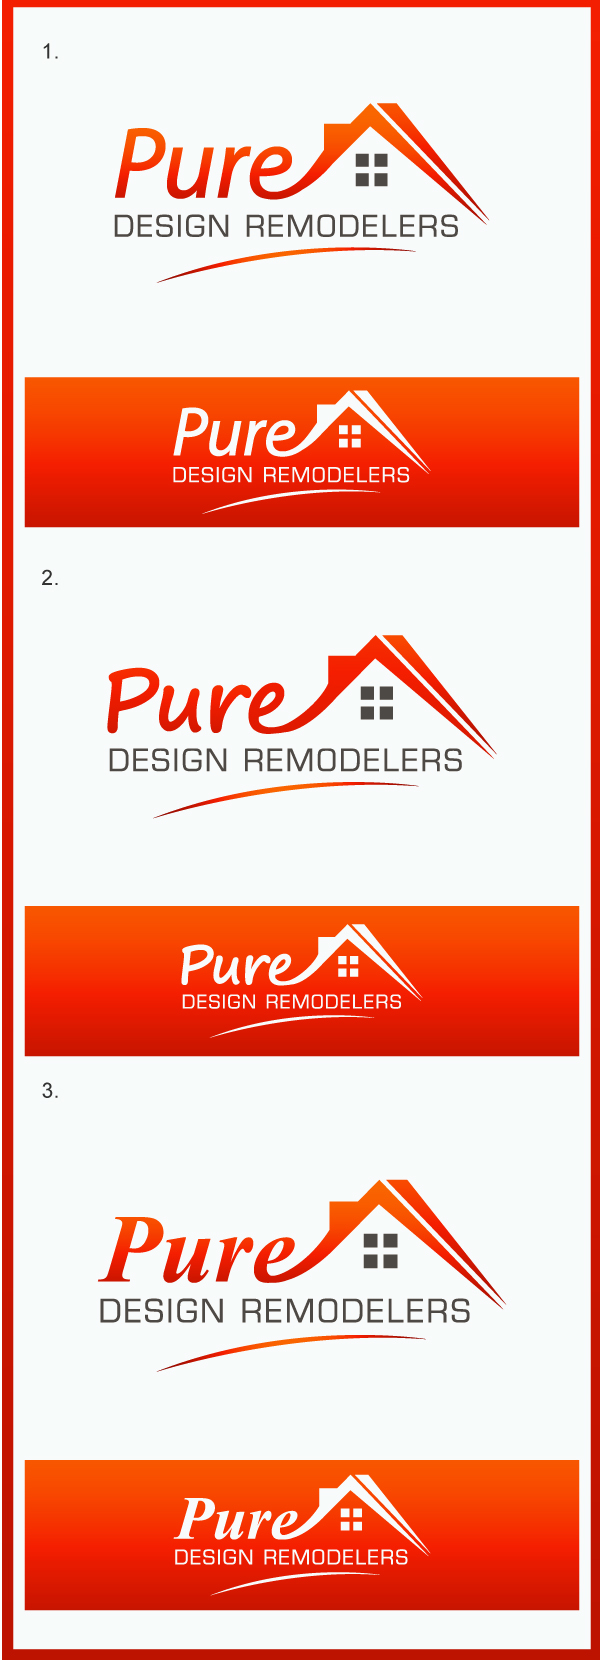 Logo Design by Creasian - Entry No. 121 in the Logo Design Contest Custom Logo Design for Pure Design Remodelers.